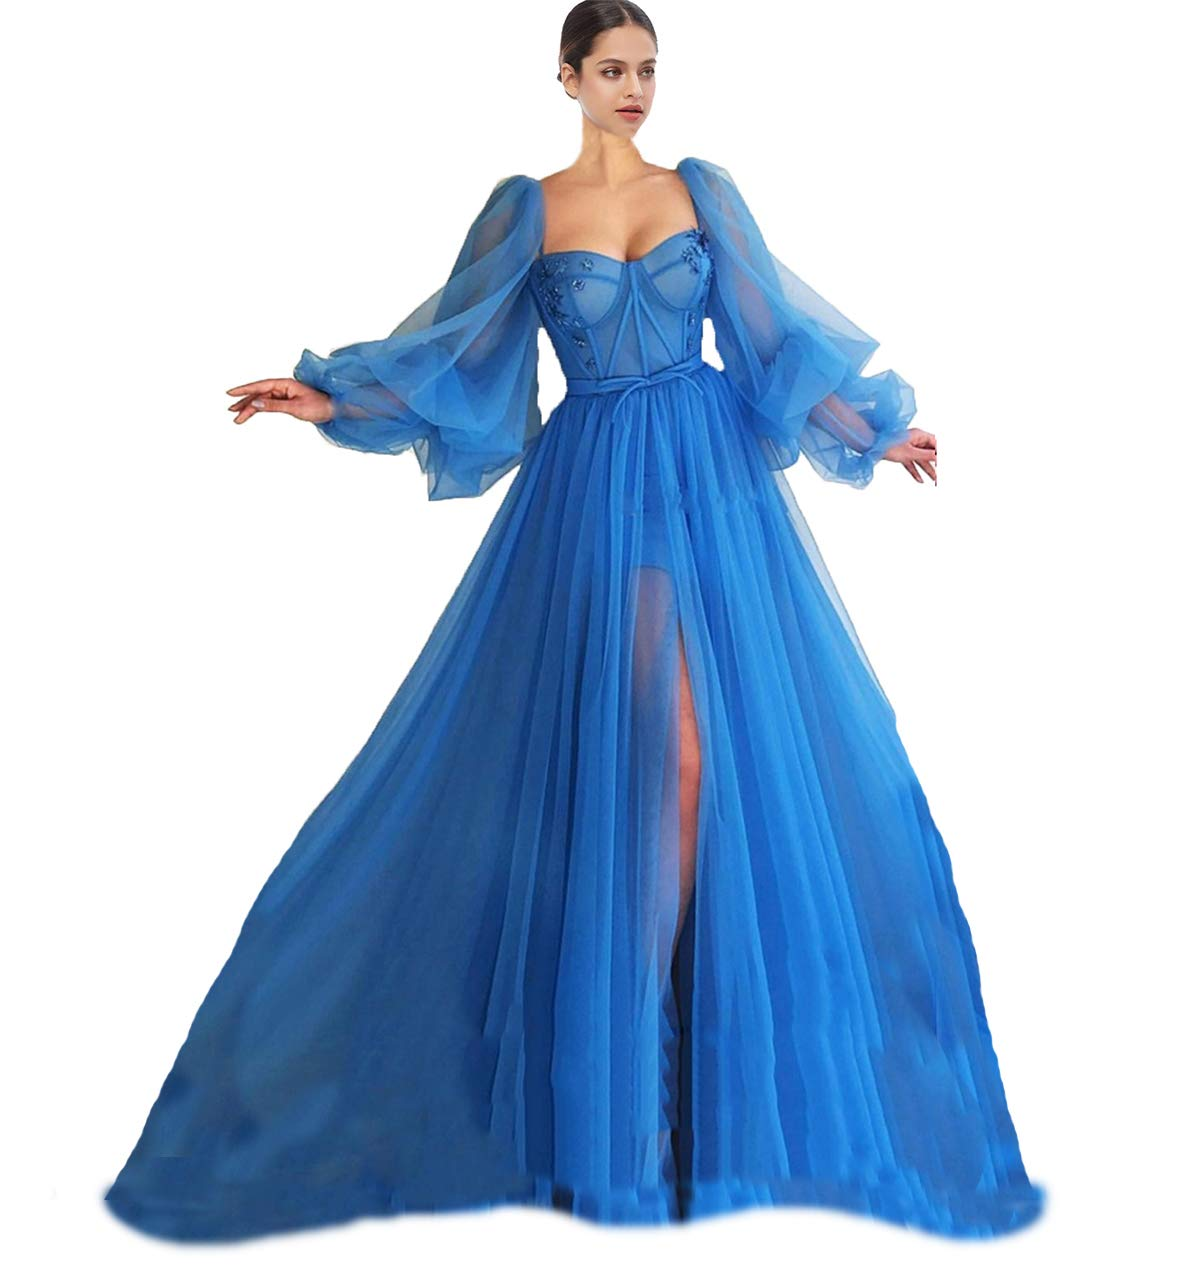 Available at Amazon: Xijun Long Puffy Sleeve Prom Dress Long with Split Evening Gowns Birthday Party Dresses